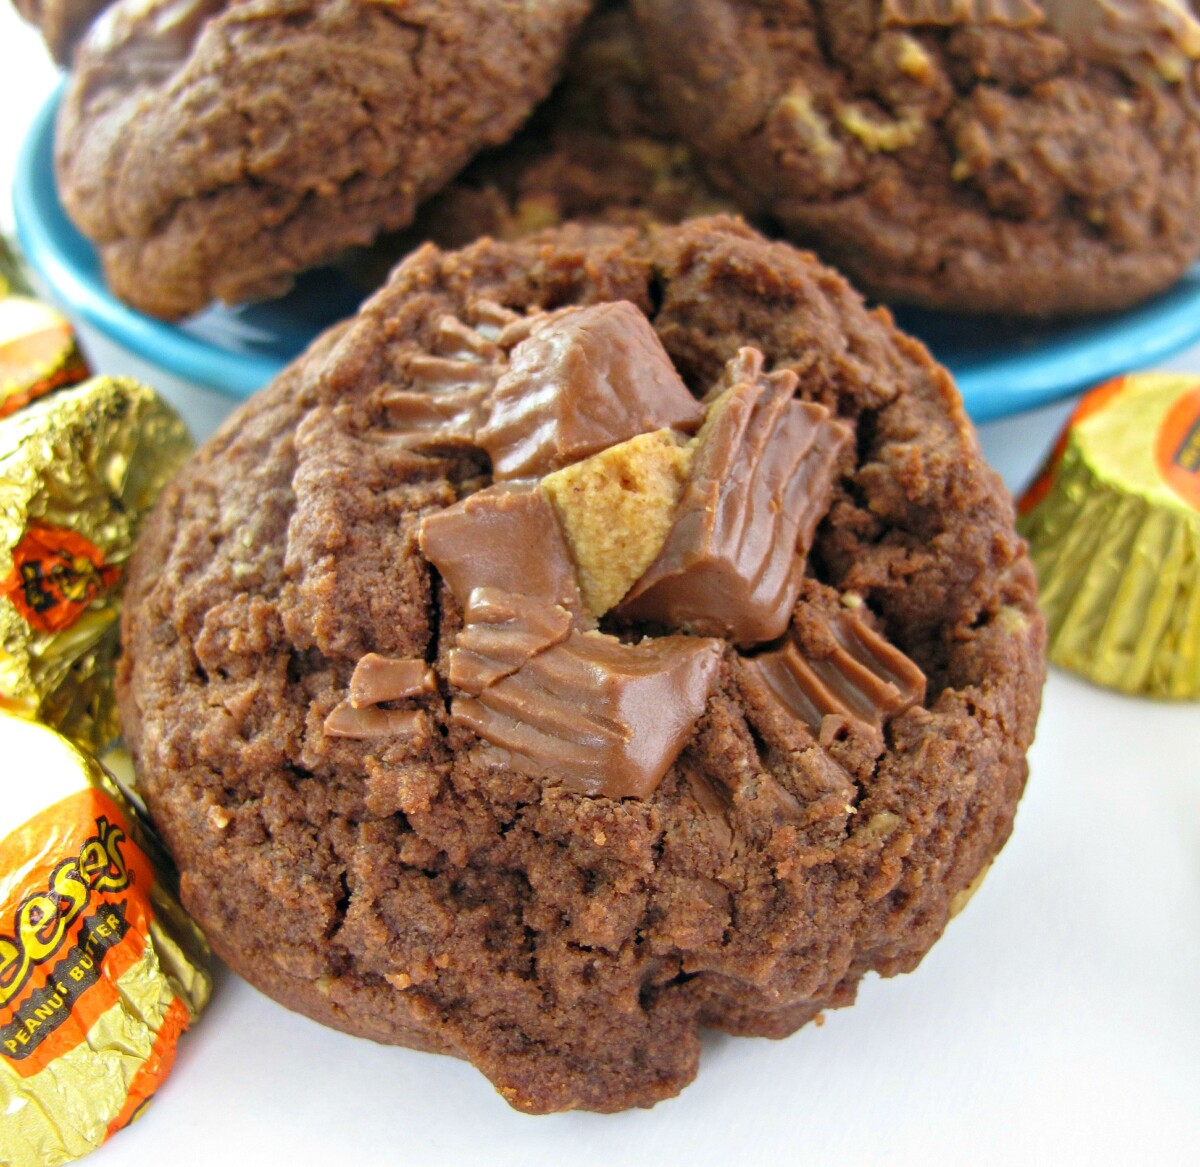 Closeup of a Chocolate Peanut Butter Cup Cookie with chopped peanut butter cup candy on top.